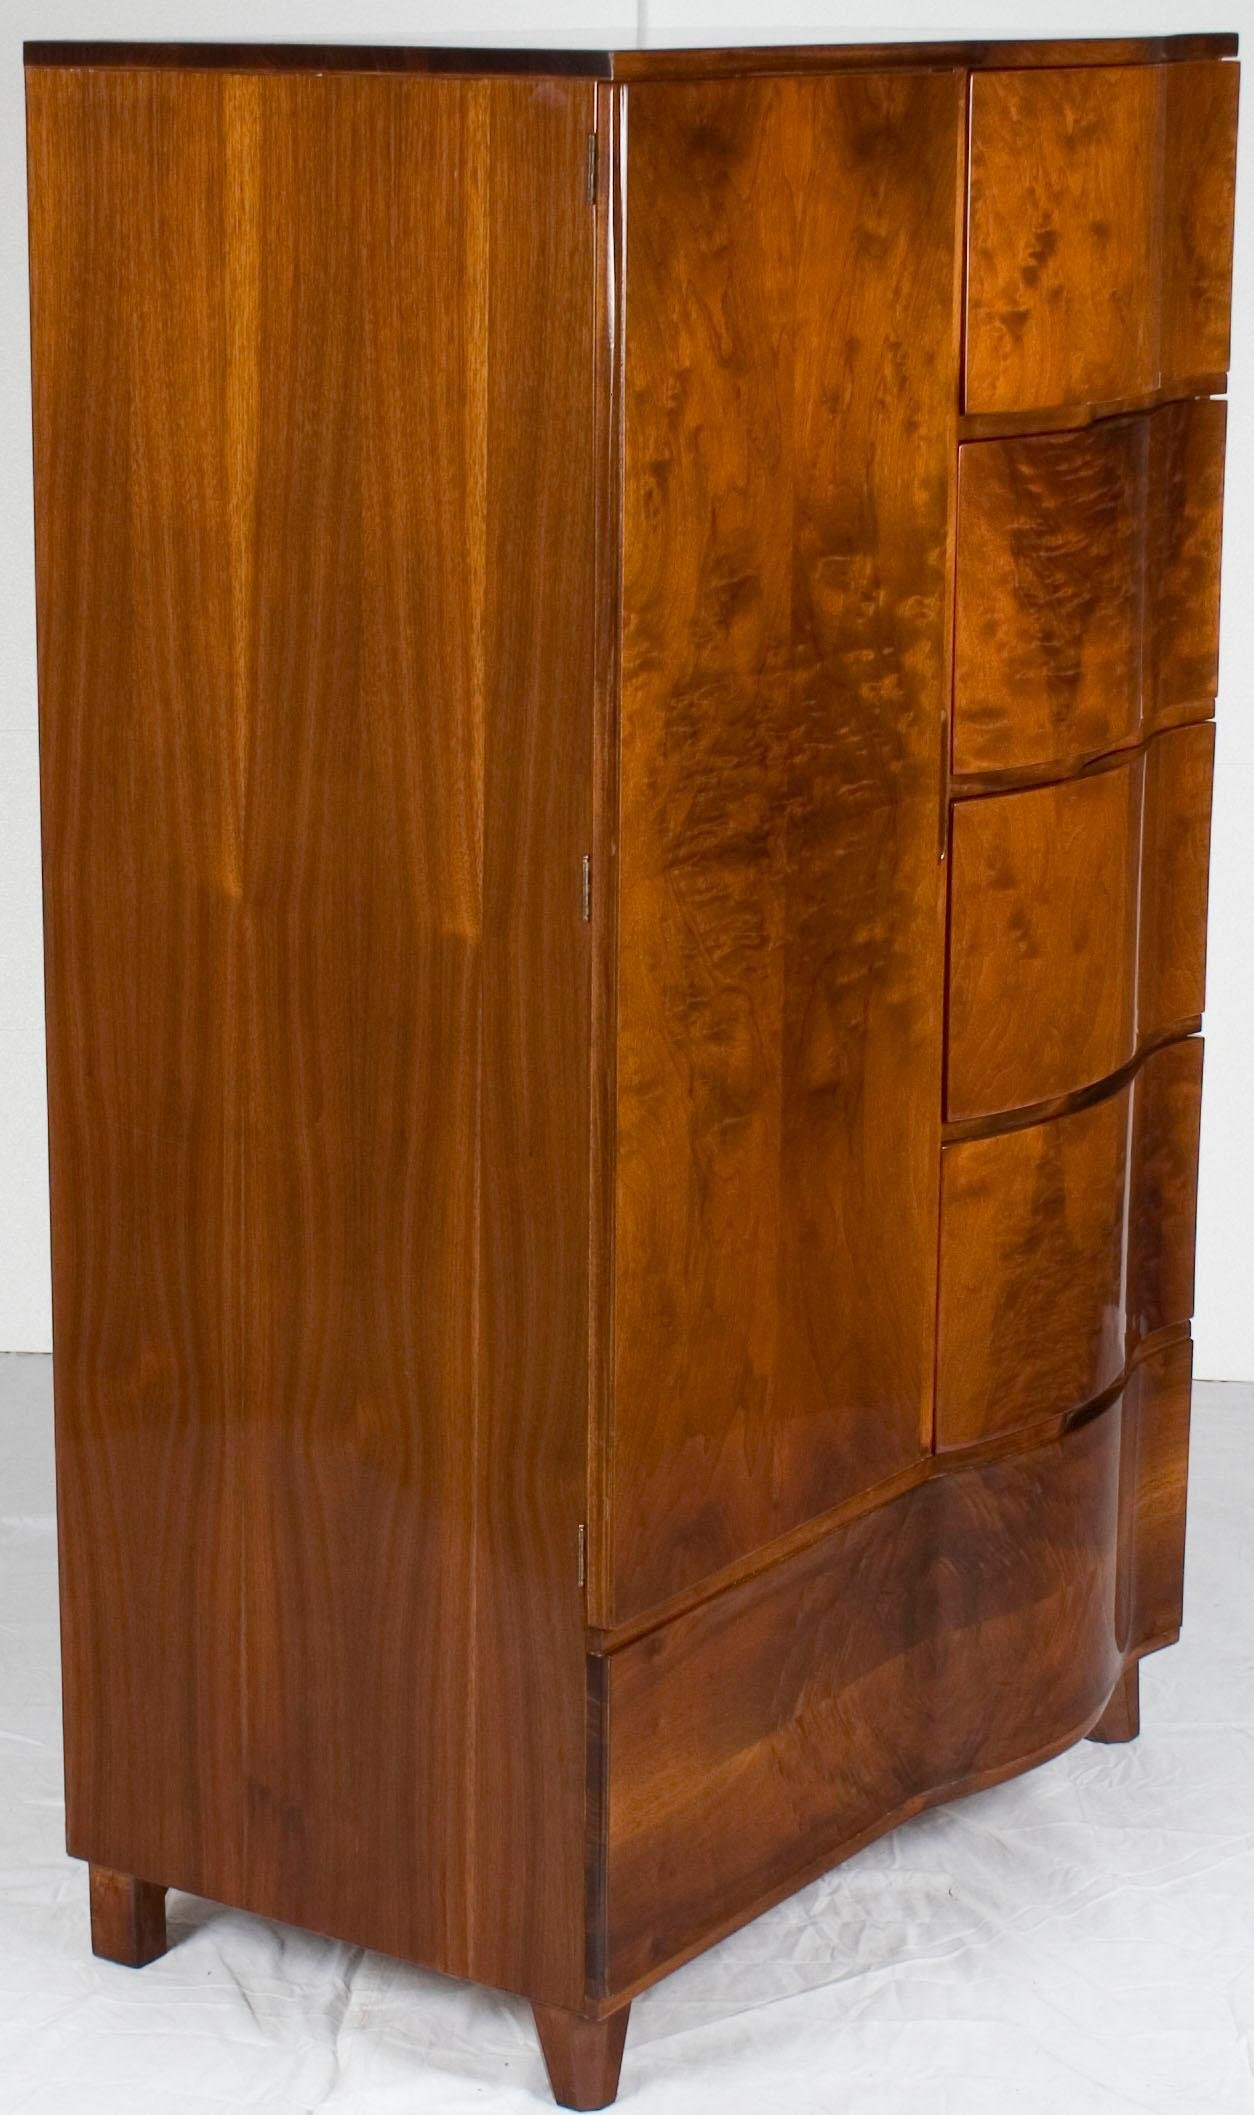 Best Art Deco Style Bedroom Wardrobe Armoire Closet For Sale At With Pictures